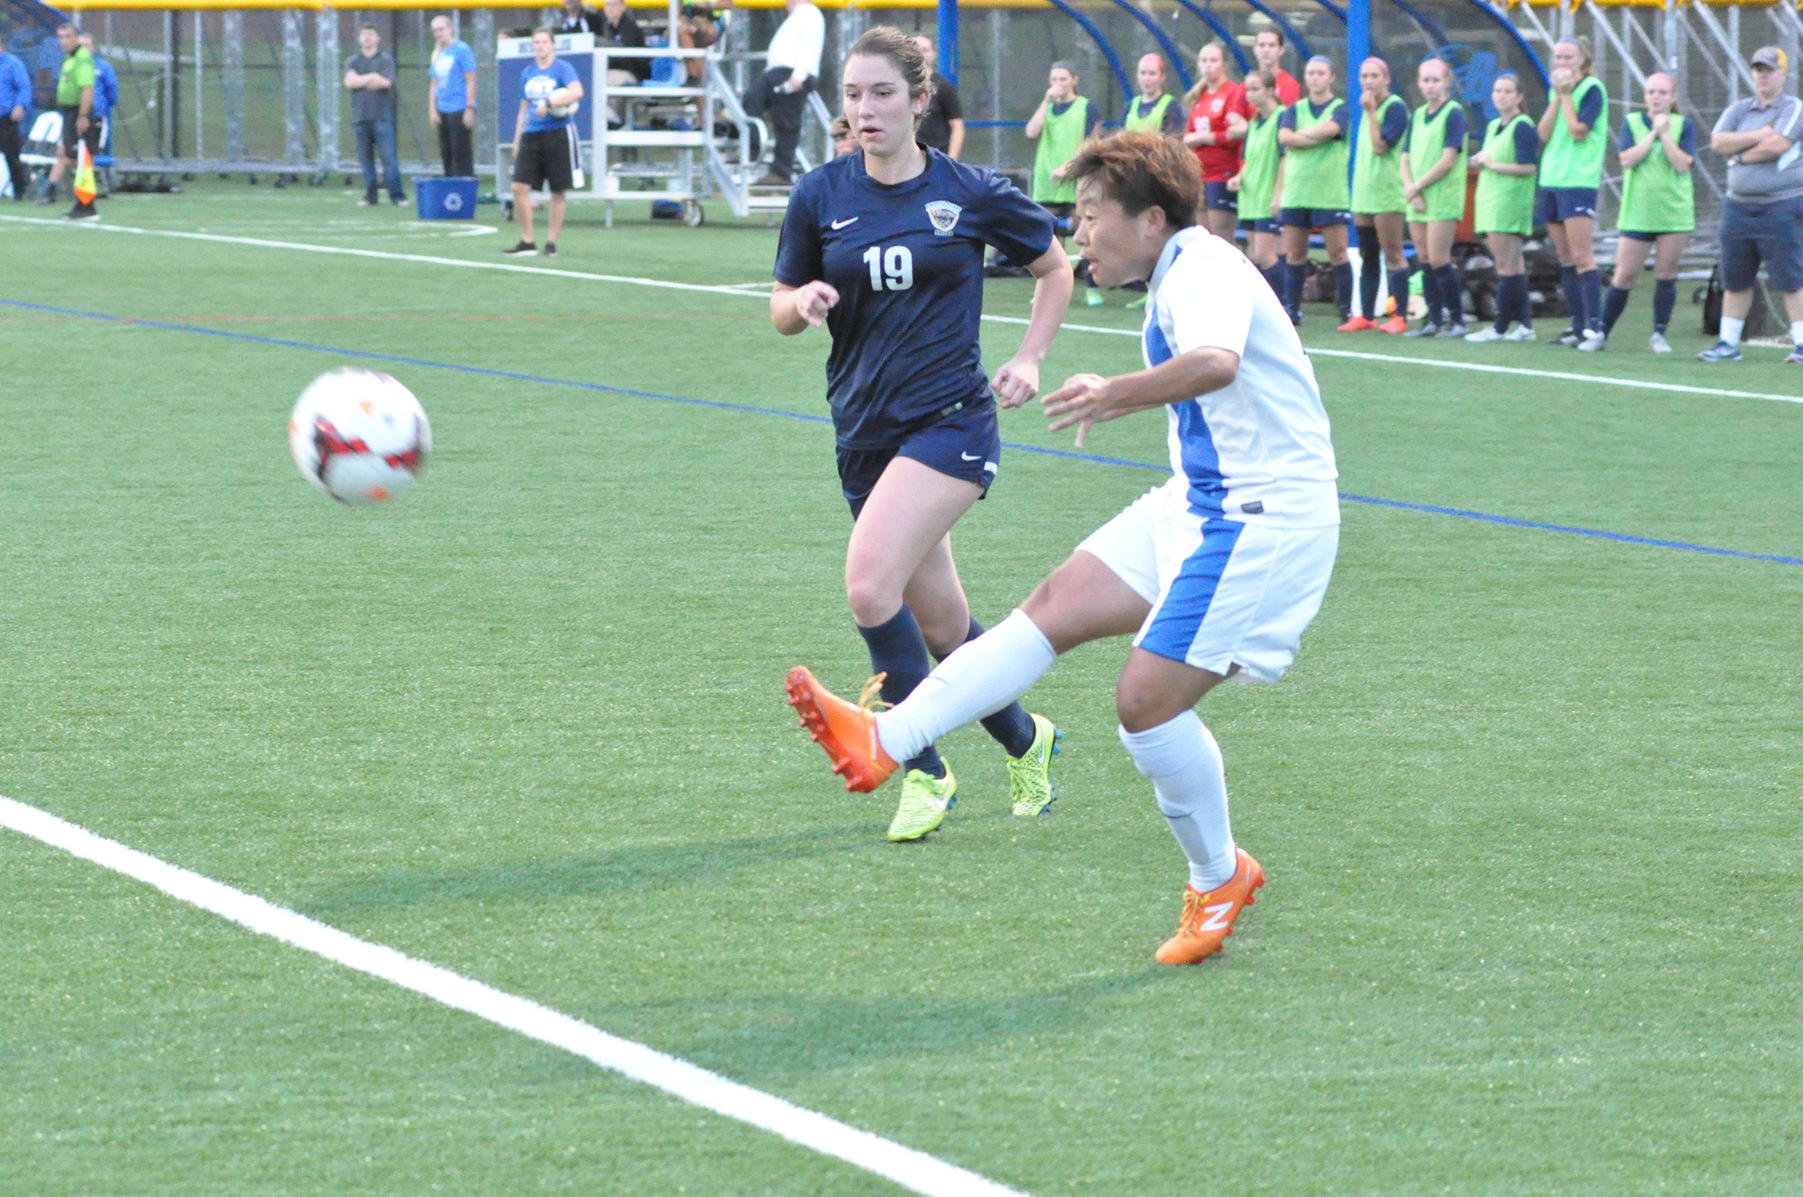 Tornados shut out the Scotties, earn second straight victory